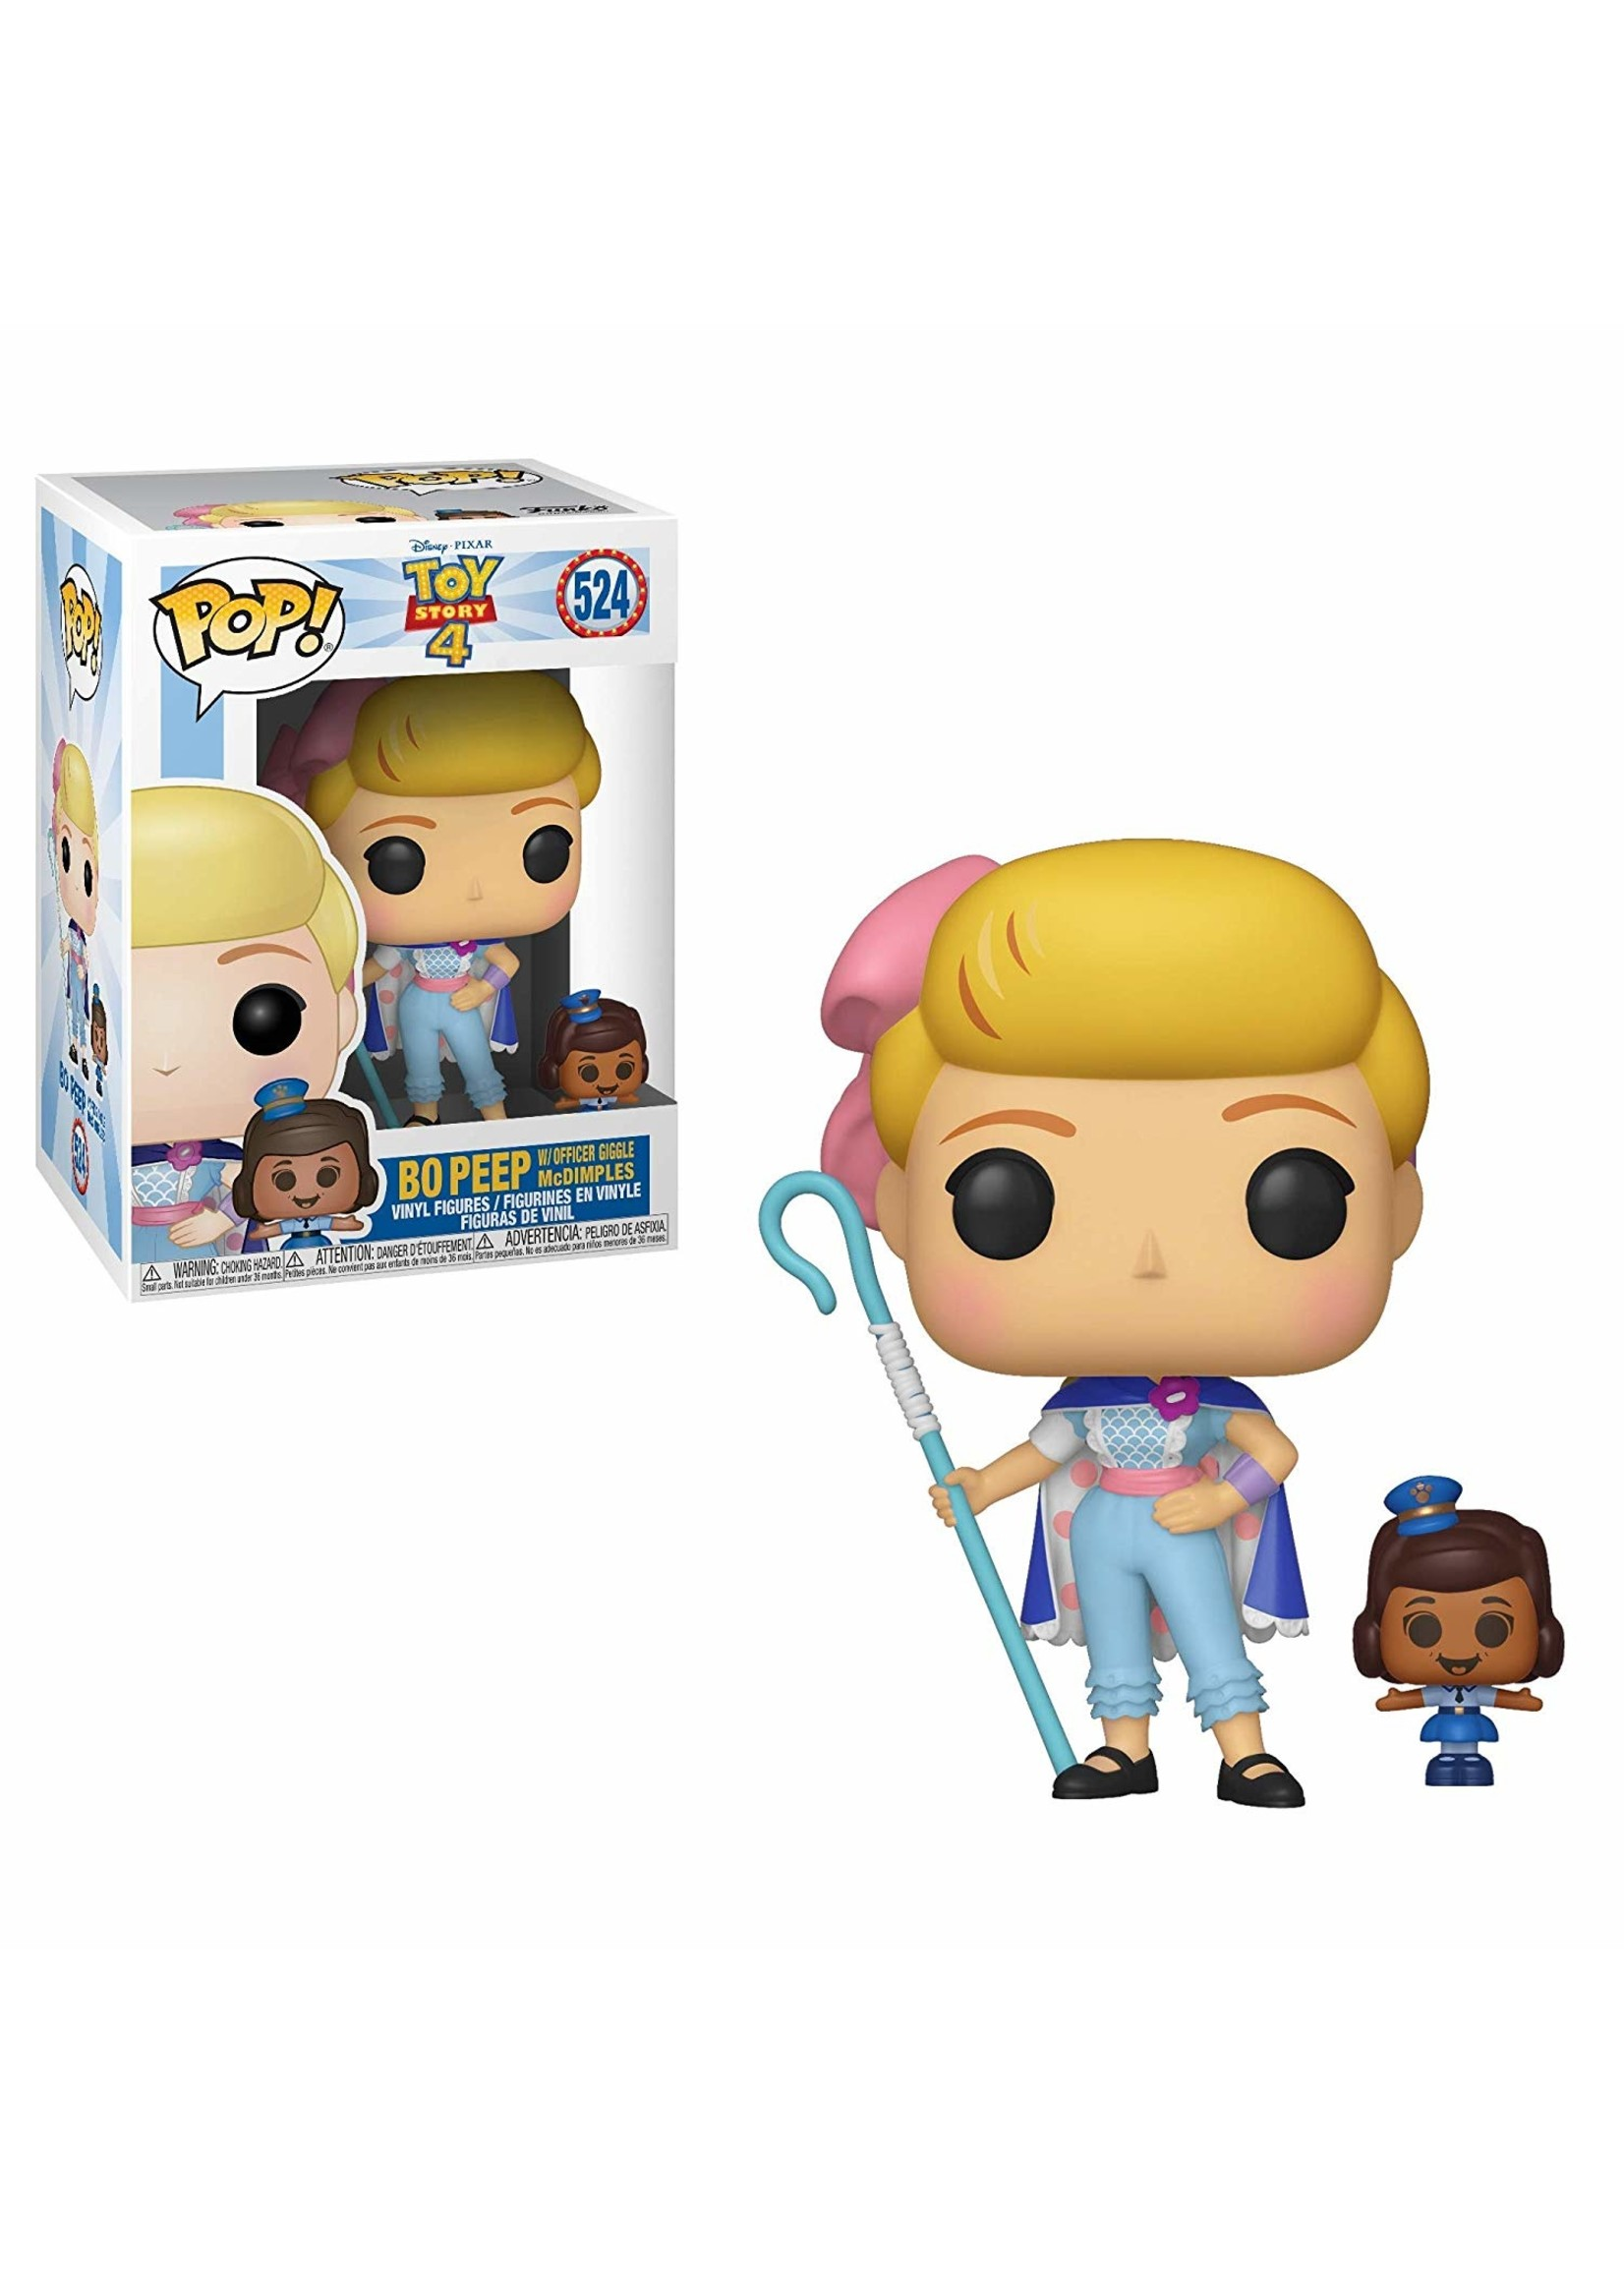 Toy Story 4 Bo Peep W/ Officer Giggle McDimples